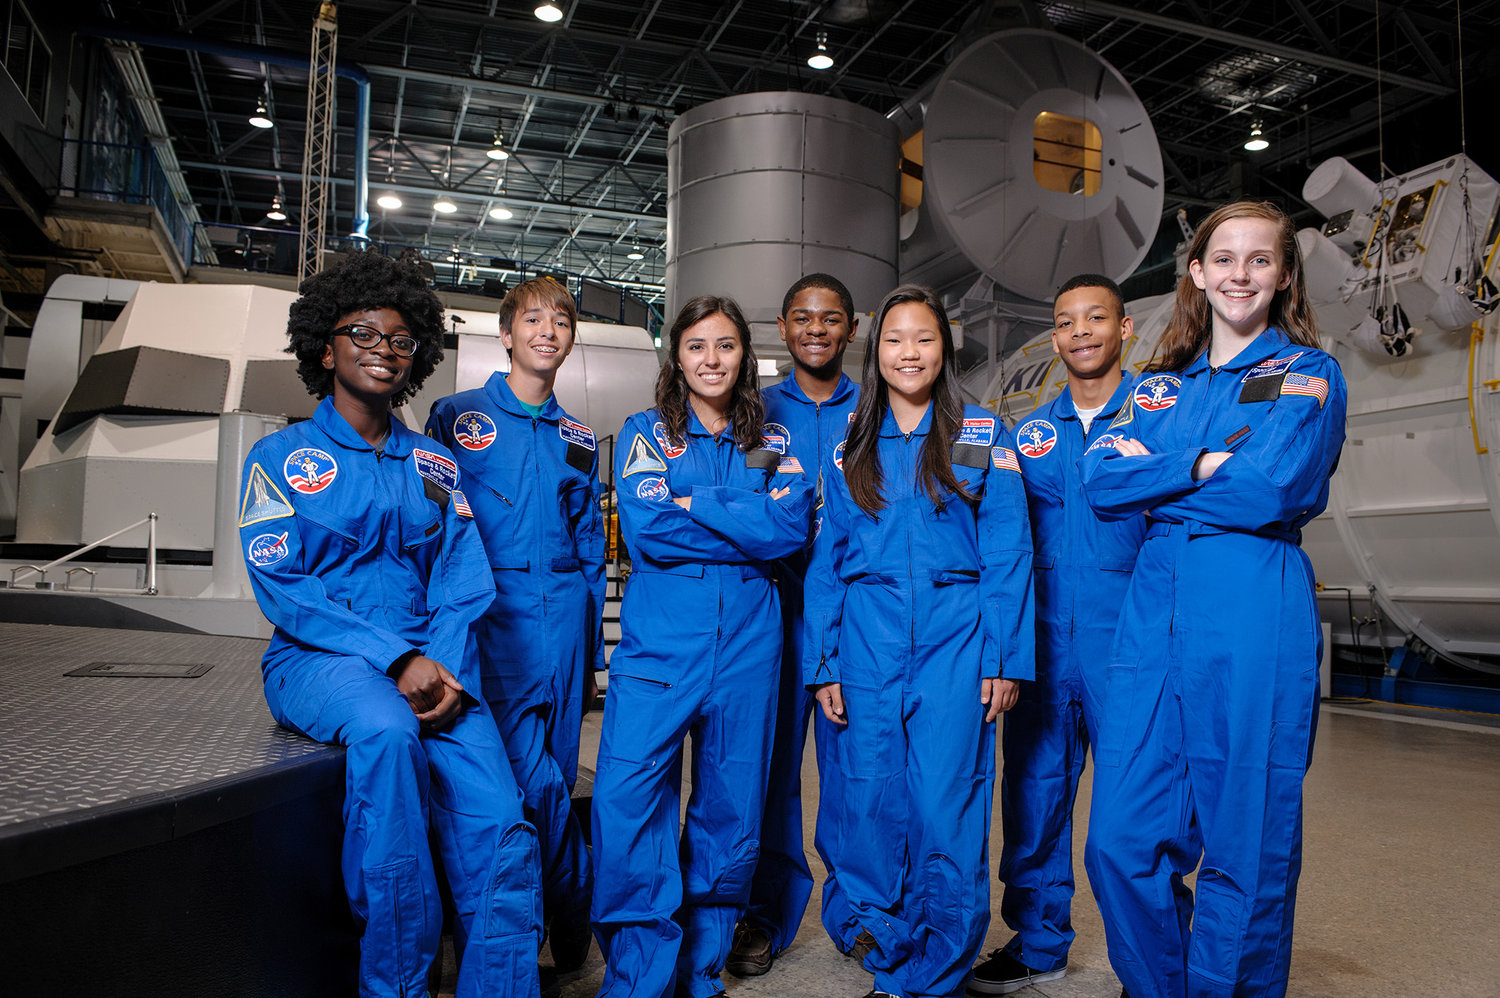 The deadline to apply for a scholarship to Space Camp is Jan. 31.